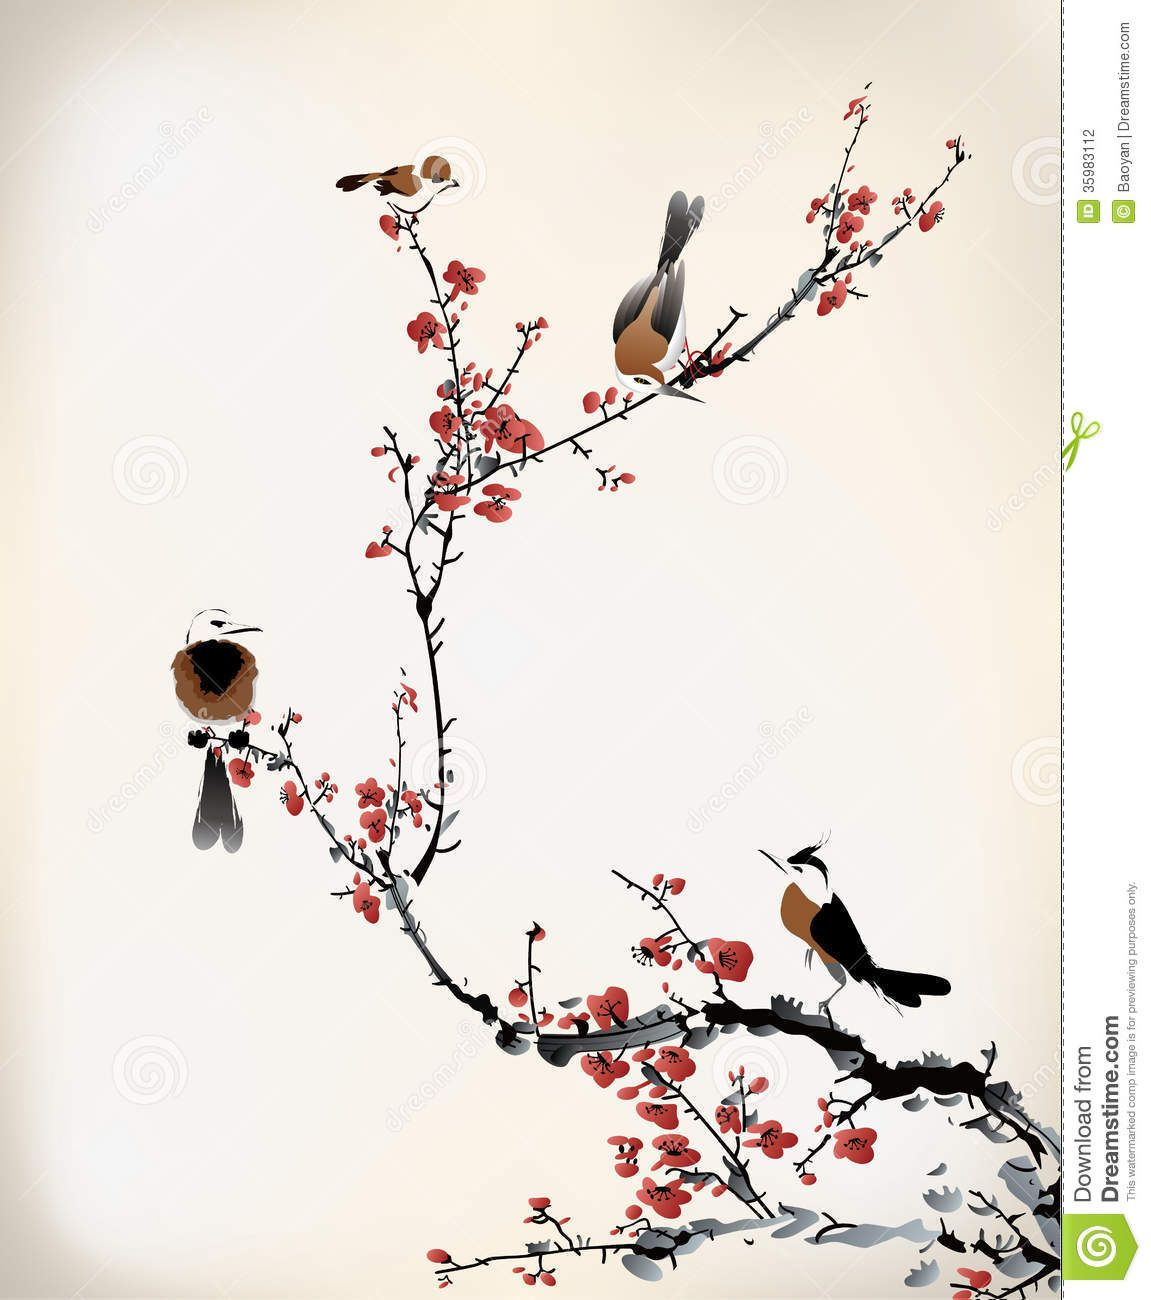 Tato Art Styles: Bird-painting-chinese-ink-tree